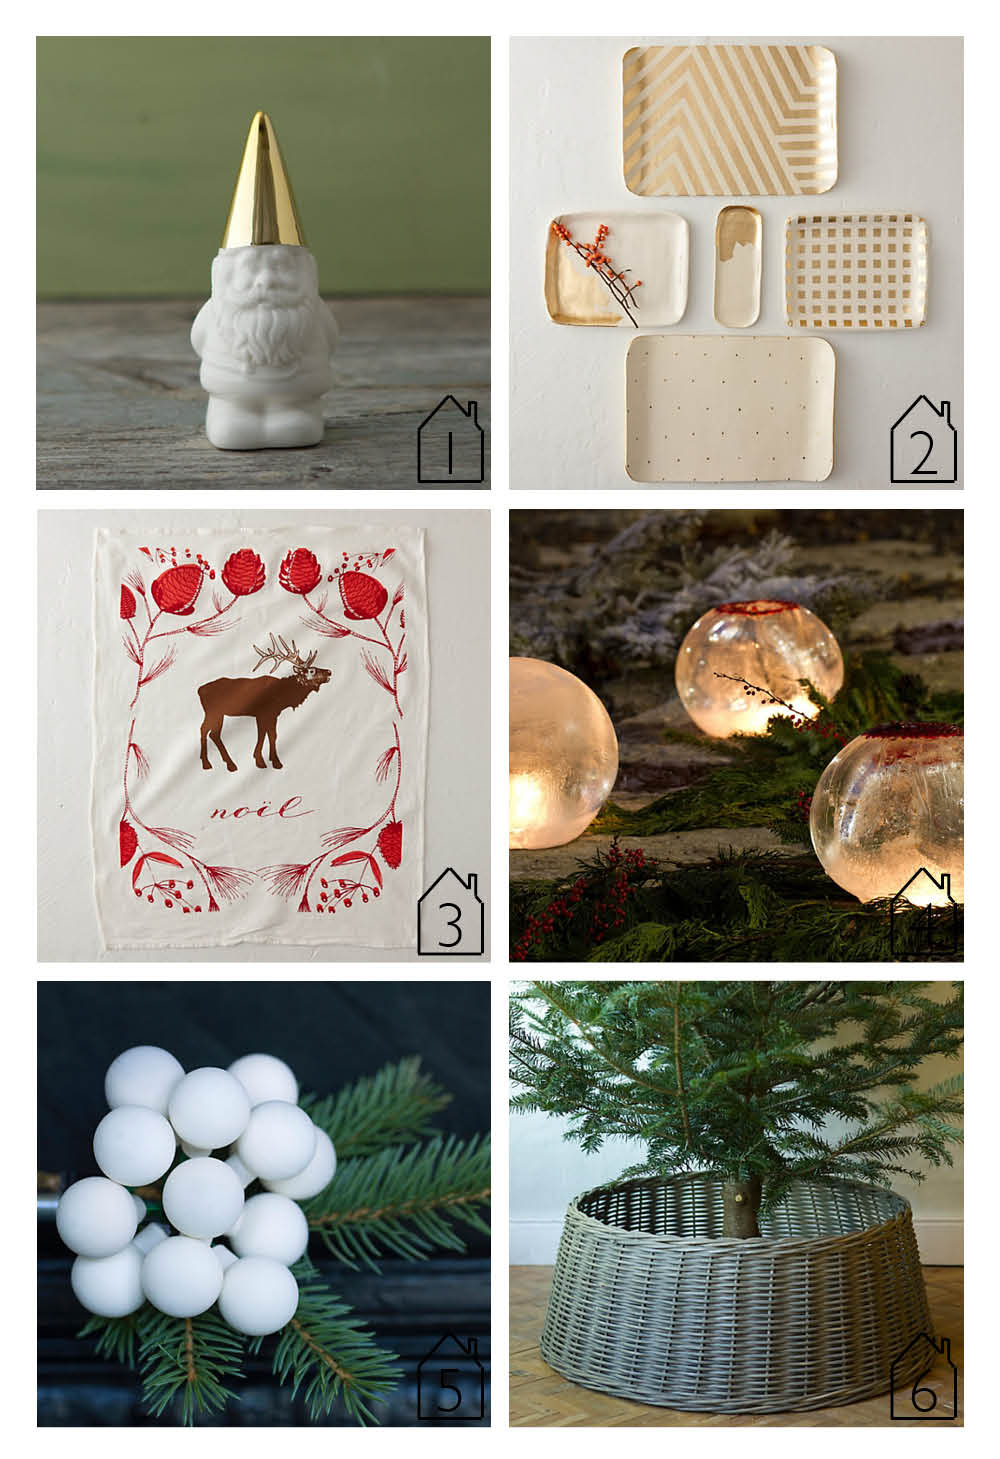 1.  Gnome Bottle Opener   2.  Gold Pindot Tray   3.  Reindeer Tea Towel   4.  Ice Lantern Kit   5.  Mini Wire-Tie Ornament   6.  Wicker Basket Tree Skirt